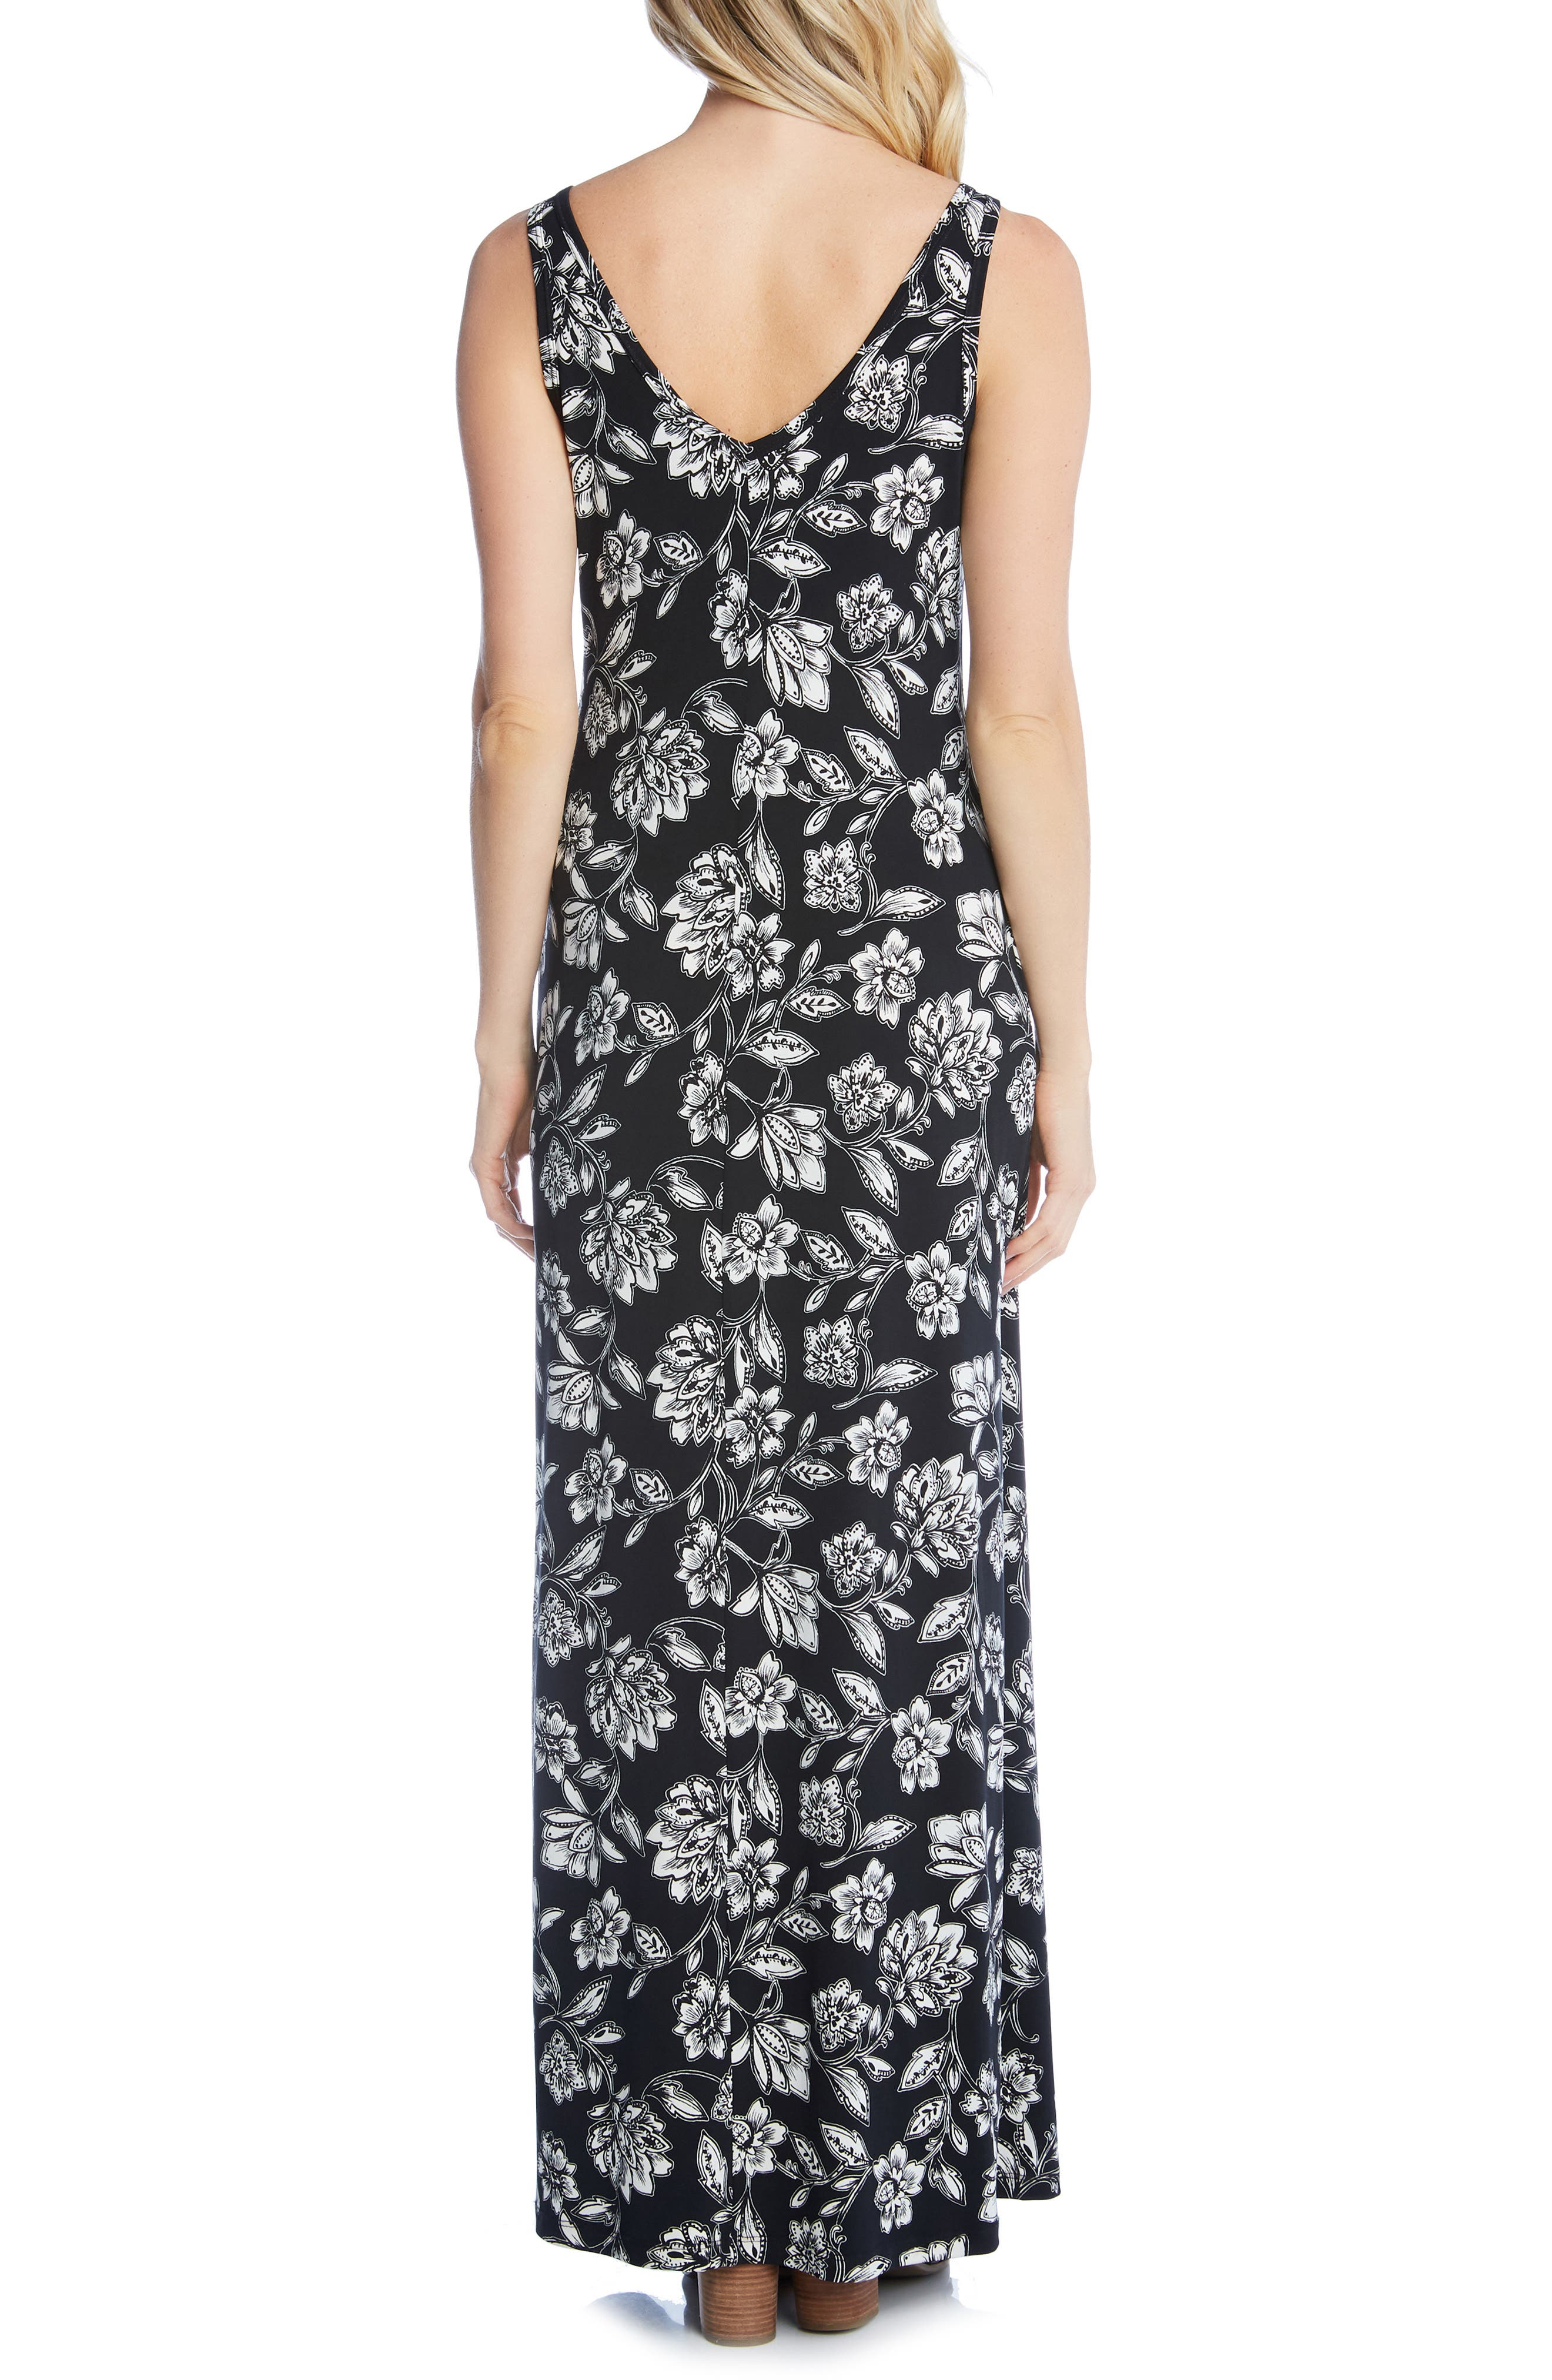 KAREN KANE, Floral Print Maxi Dress, Alternate thumbnail 2, color, PRINT